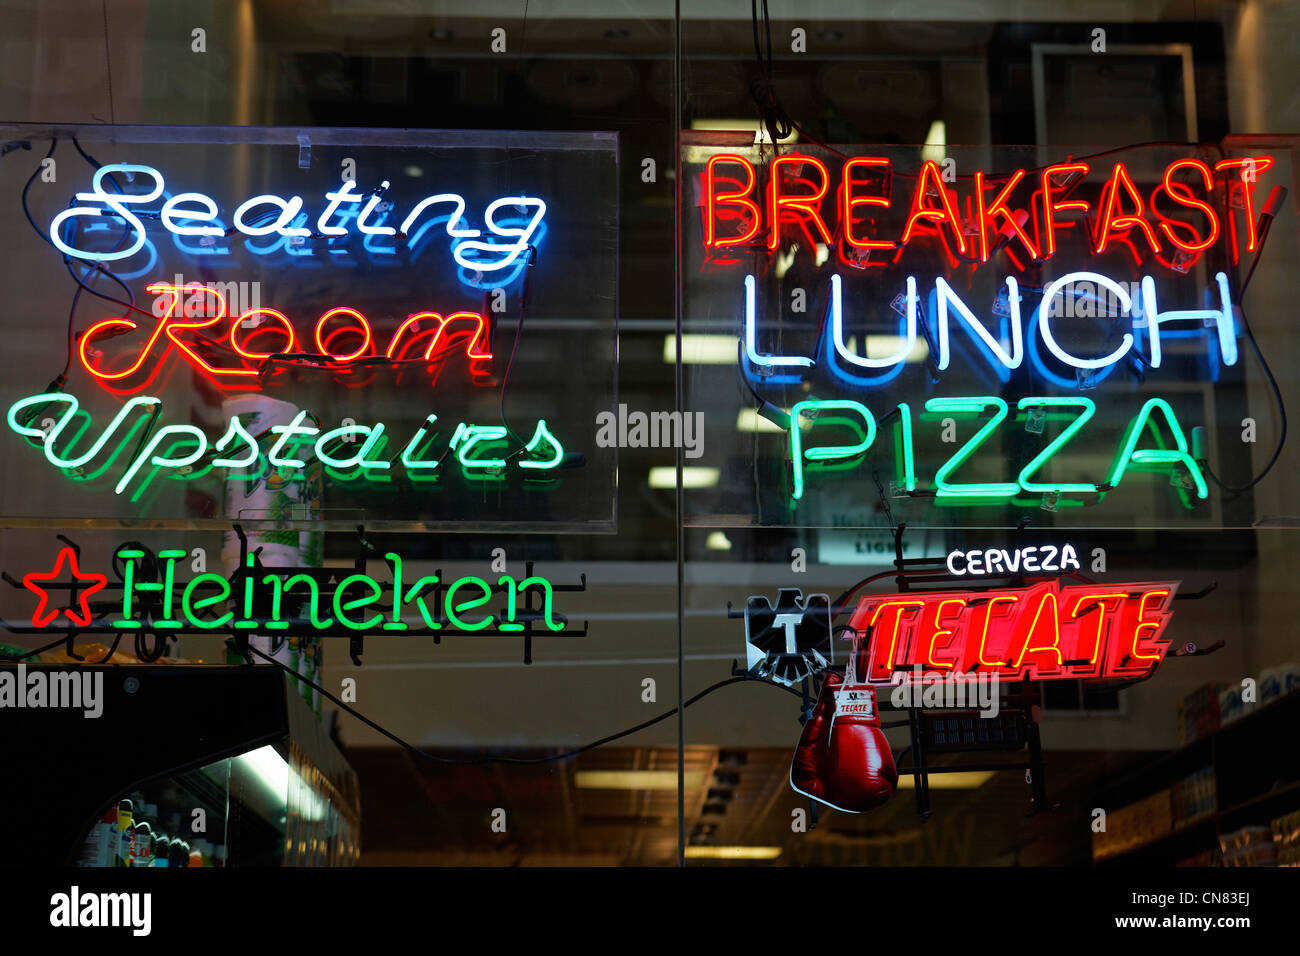 United States, New York City, Manhattan, Midtown, neon behind a window of a restaurant - Stock Image